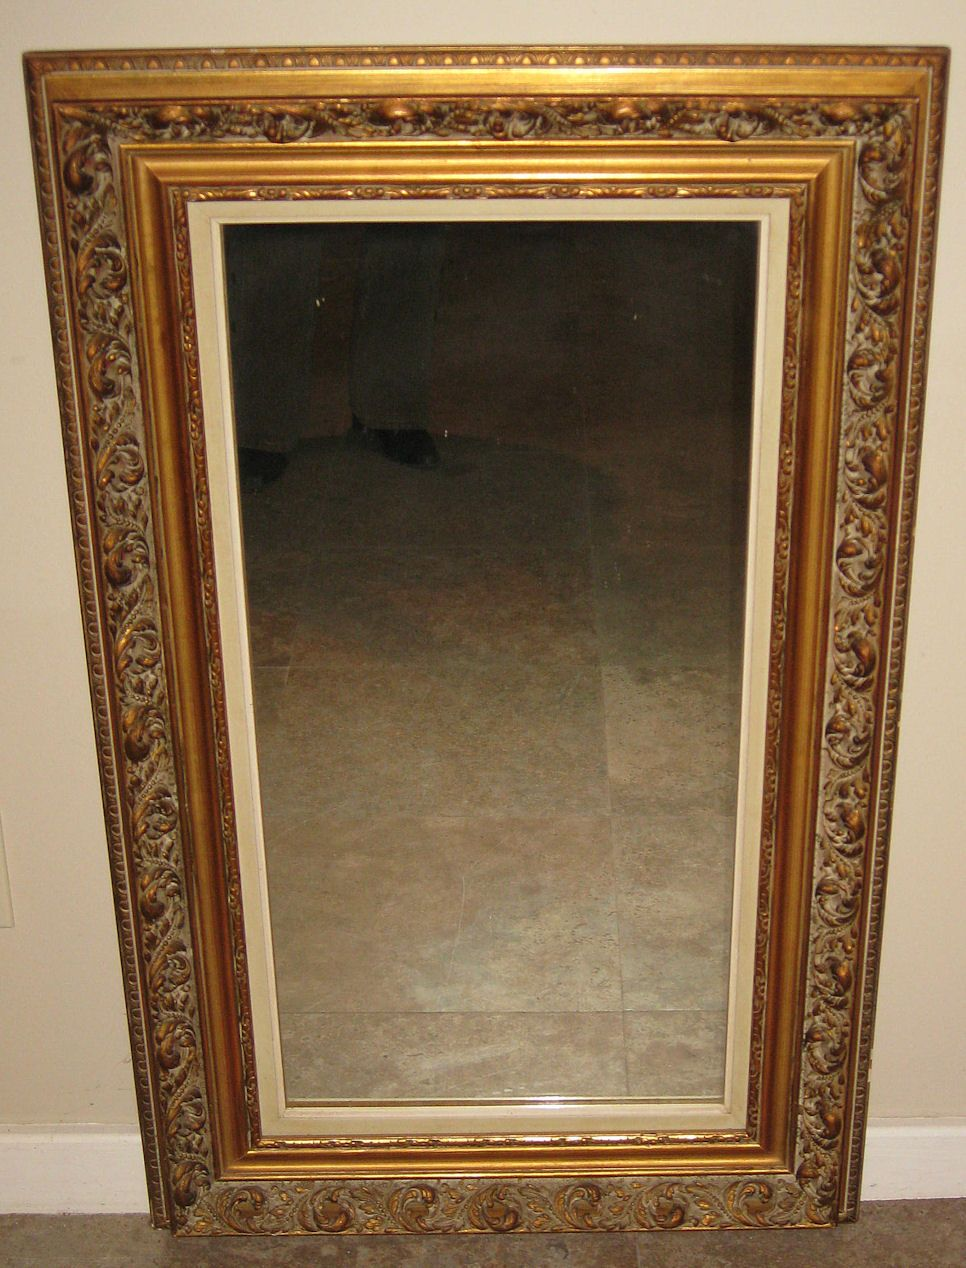 superb parcel gilt wood framed mirror from